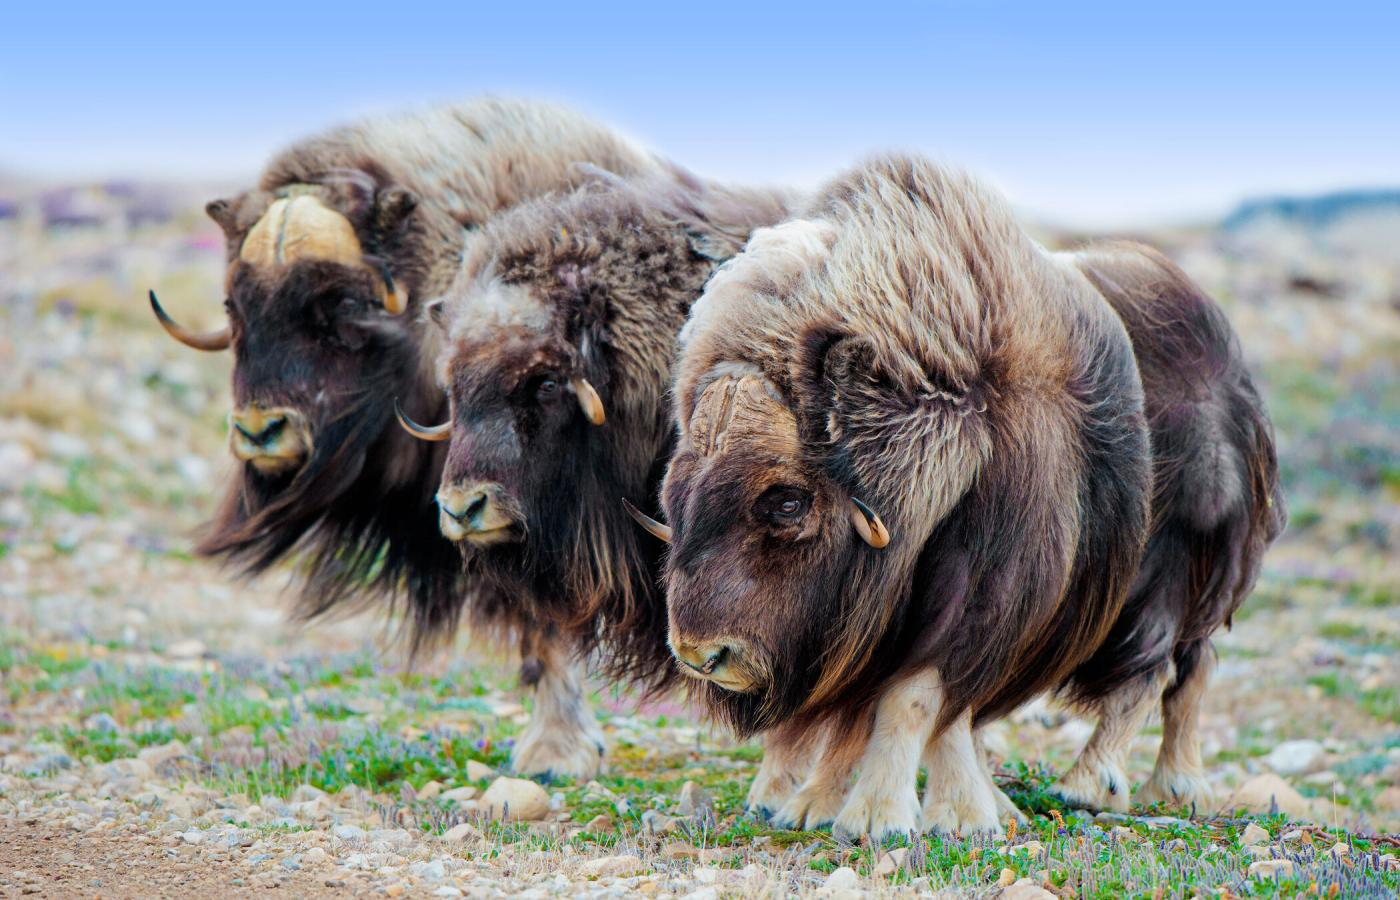 Muskoxen hang out in Aulavik National Park in Canada's Northwest Territories